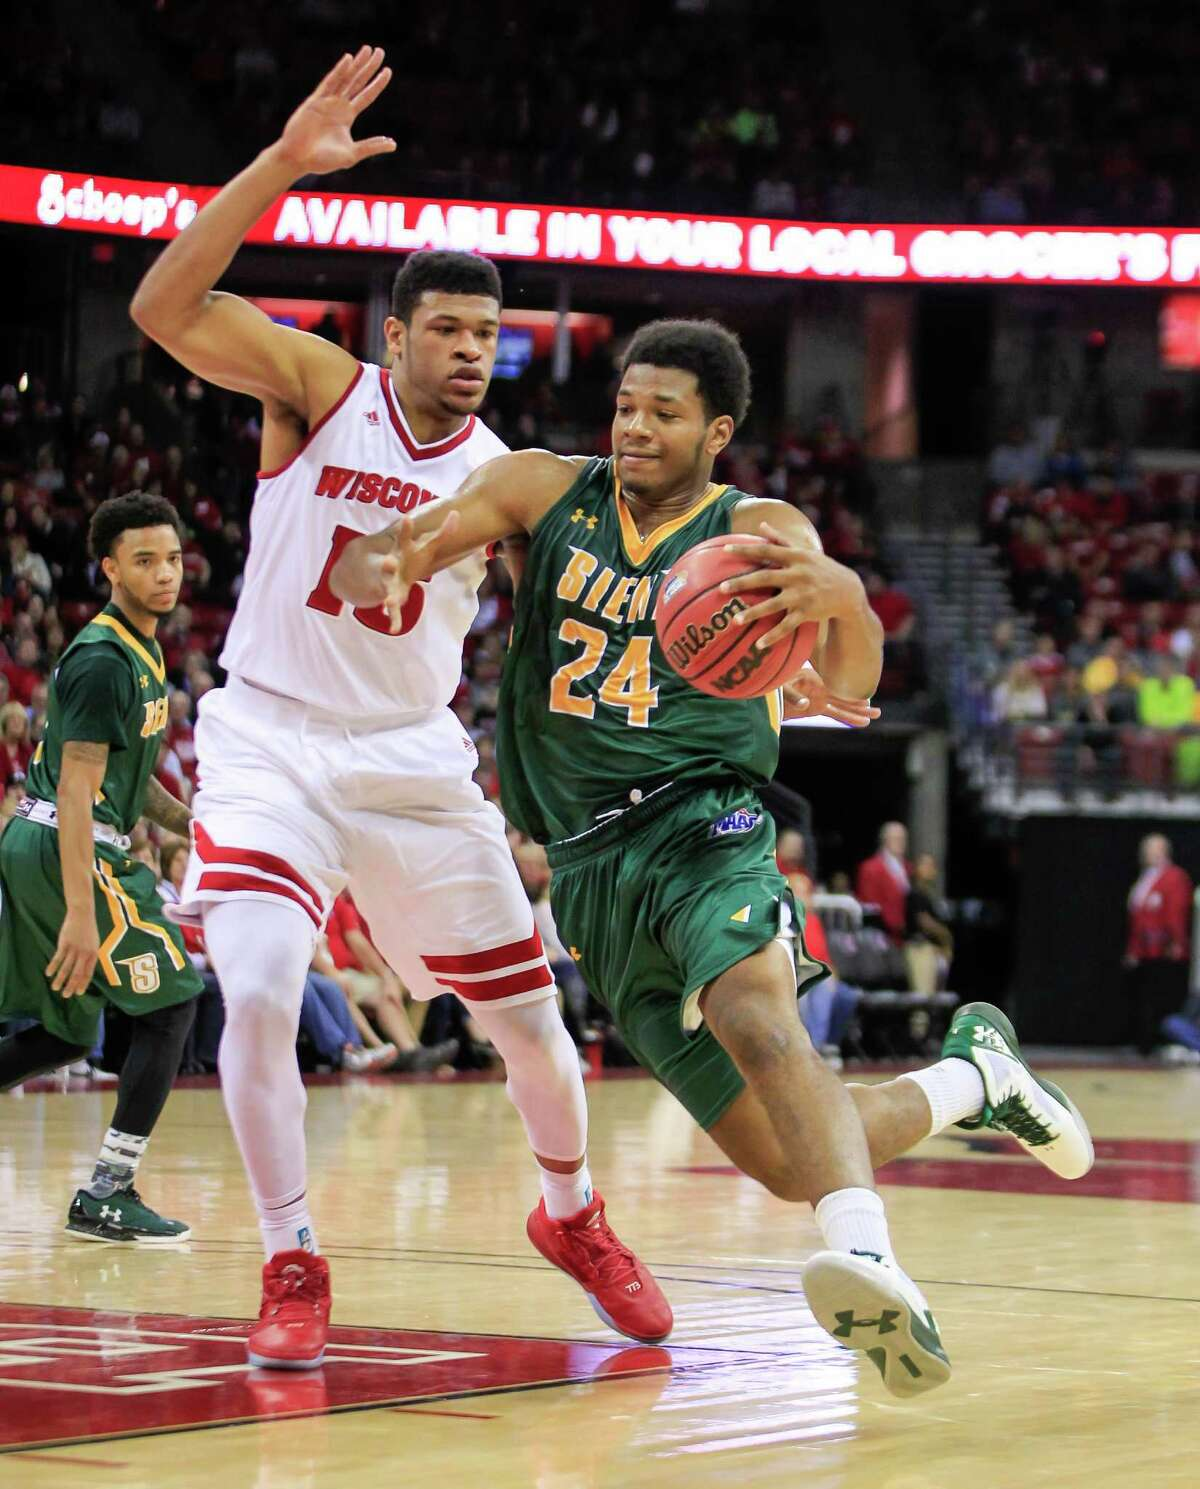 Siena's Lavon Long (24) drives on Wisconsin's Charlie Thomas (15) during the first half of an NCAA college basketball game Sunday, Nov. 15, 2015, in Madison, Wis. (AP Photo/Andy Manis) ORG XMIT: WIAM109